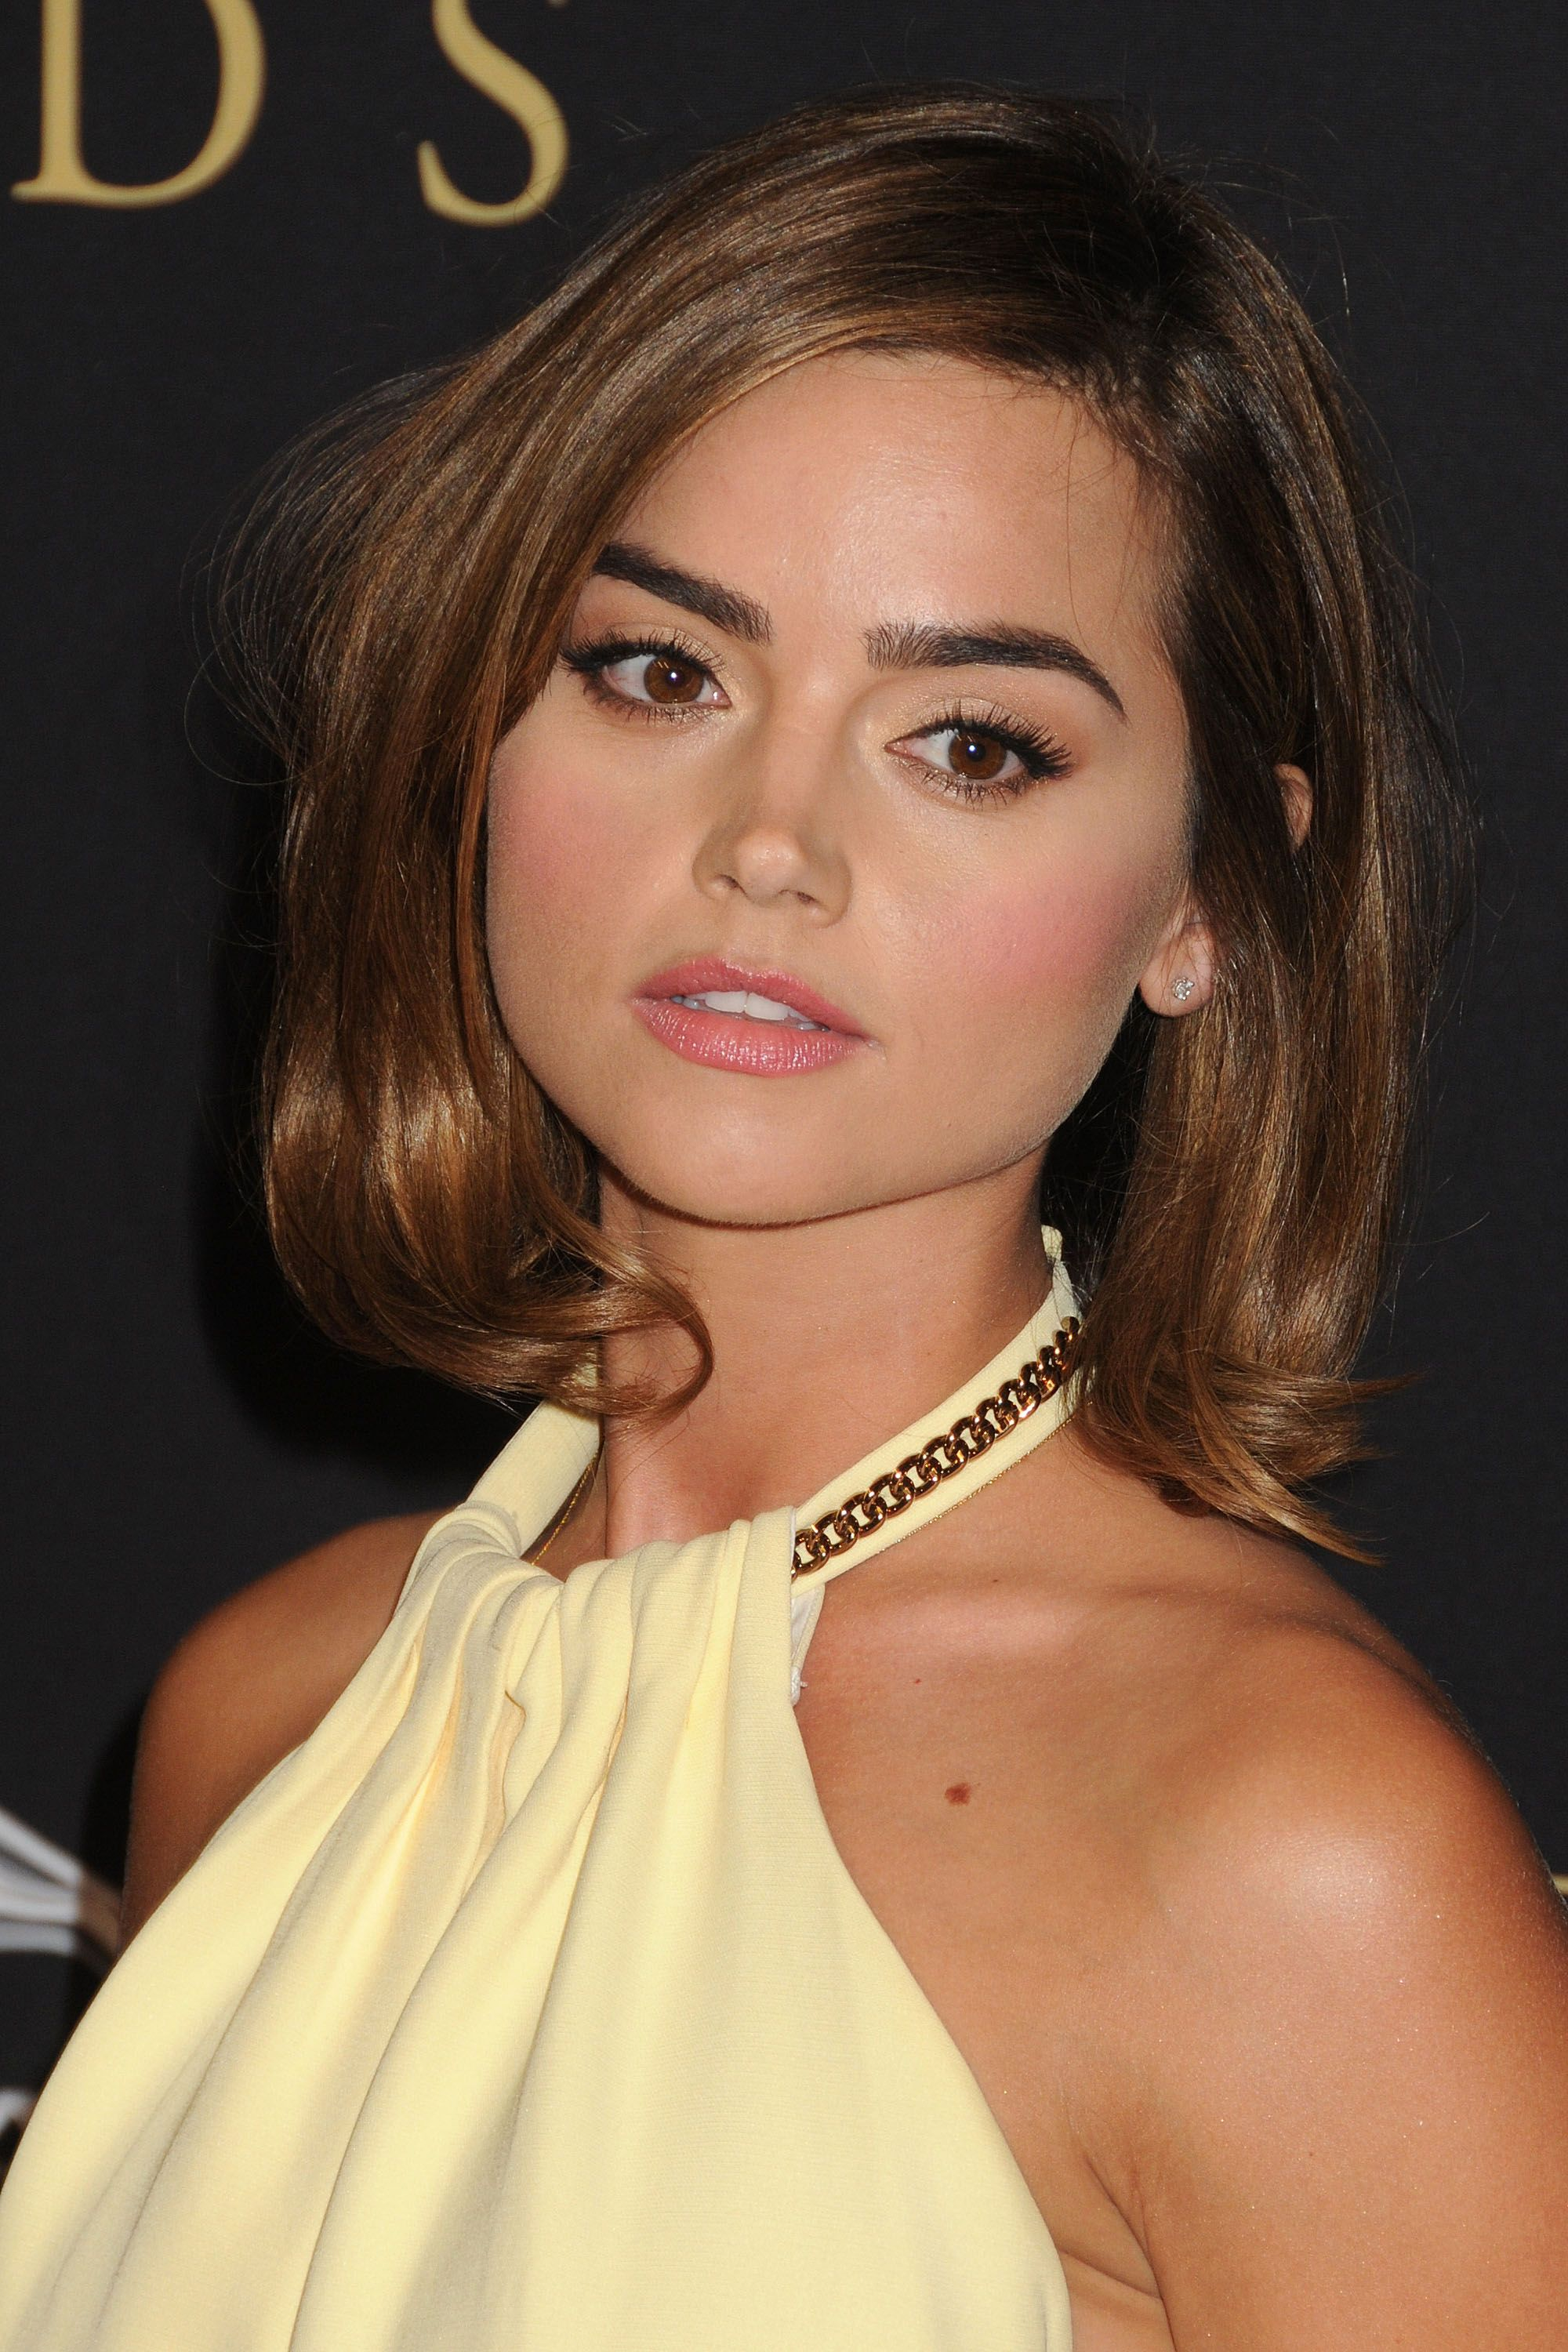 jenna coleman beautiful